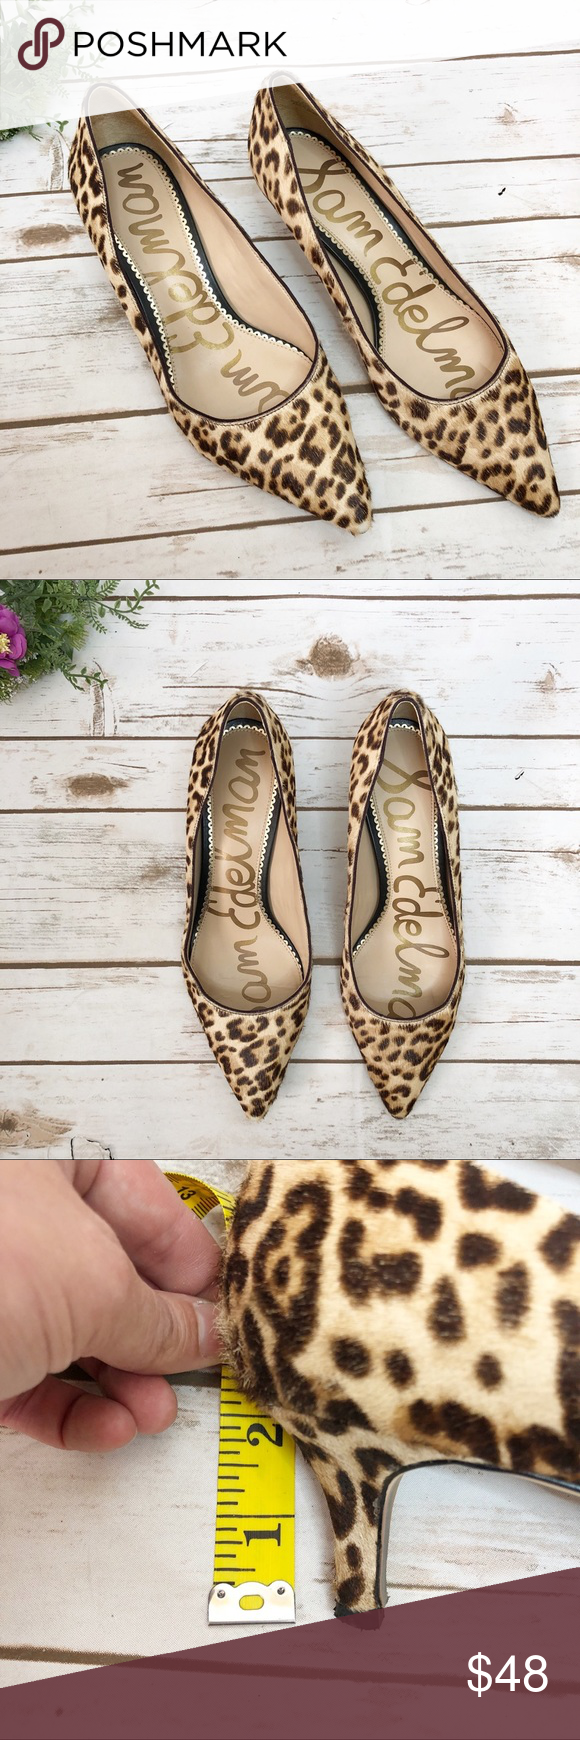 Sam Edelman Dori Leopard Animal Print Kitten Heel Kitten Heels Leopard Animal Shoes Women Heels